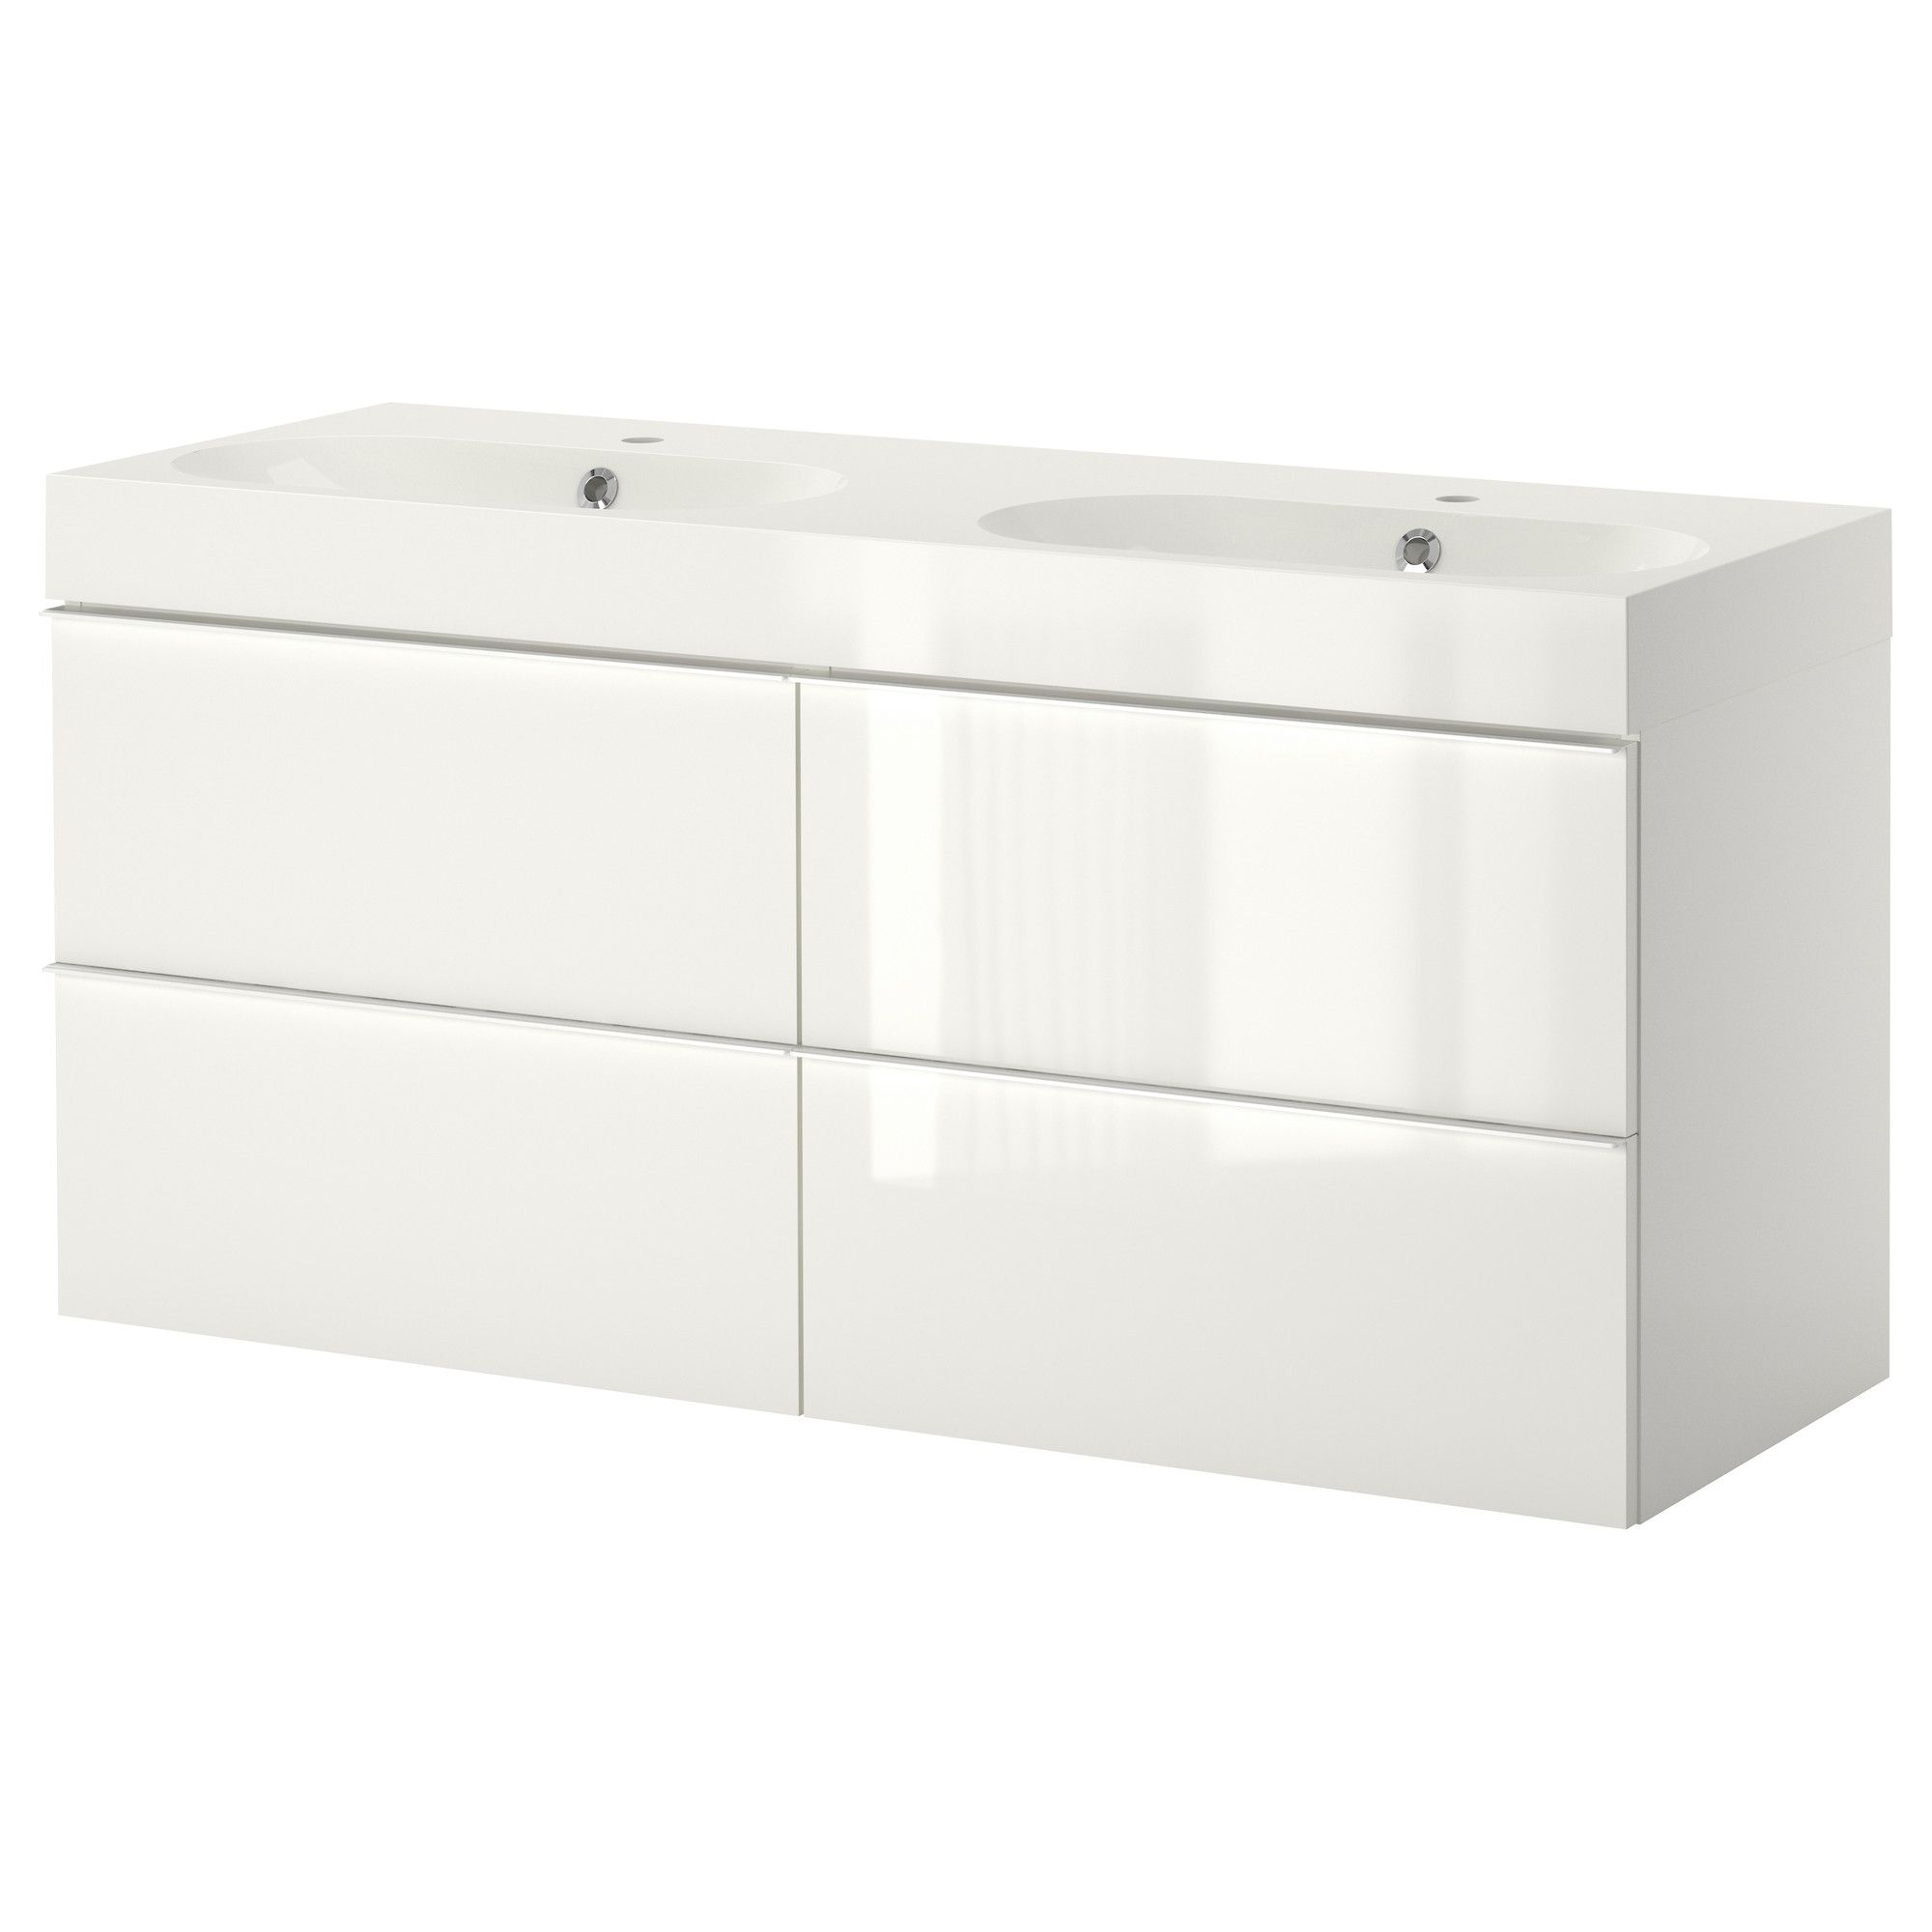 Ikea Bathroom Sinks Inspirational Under Sink Vanity Unit